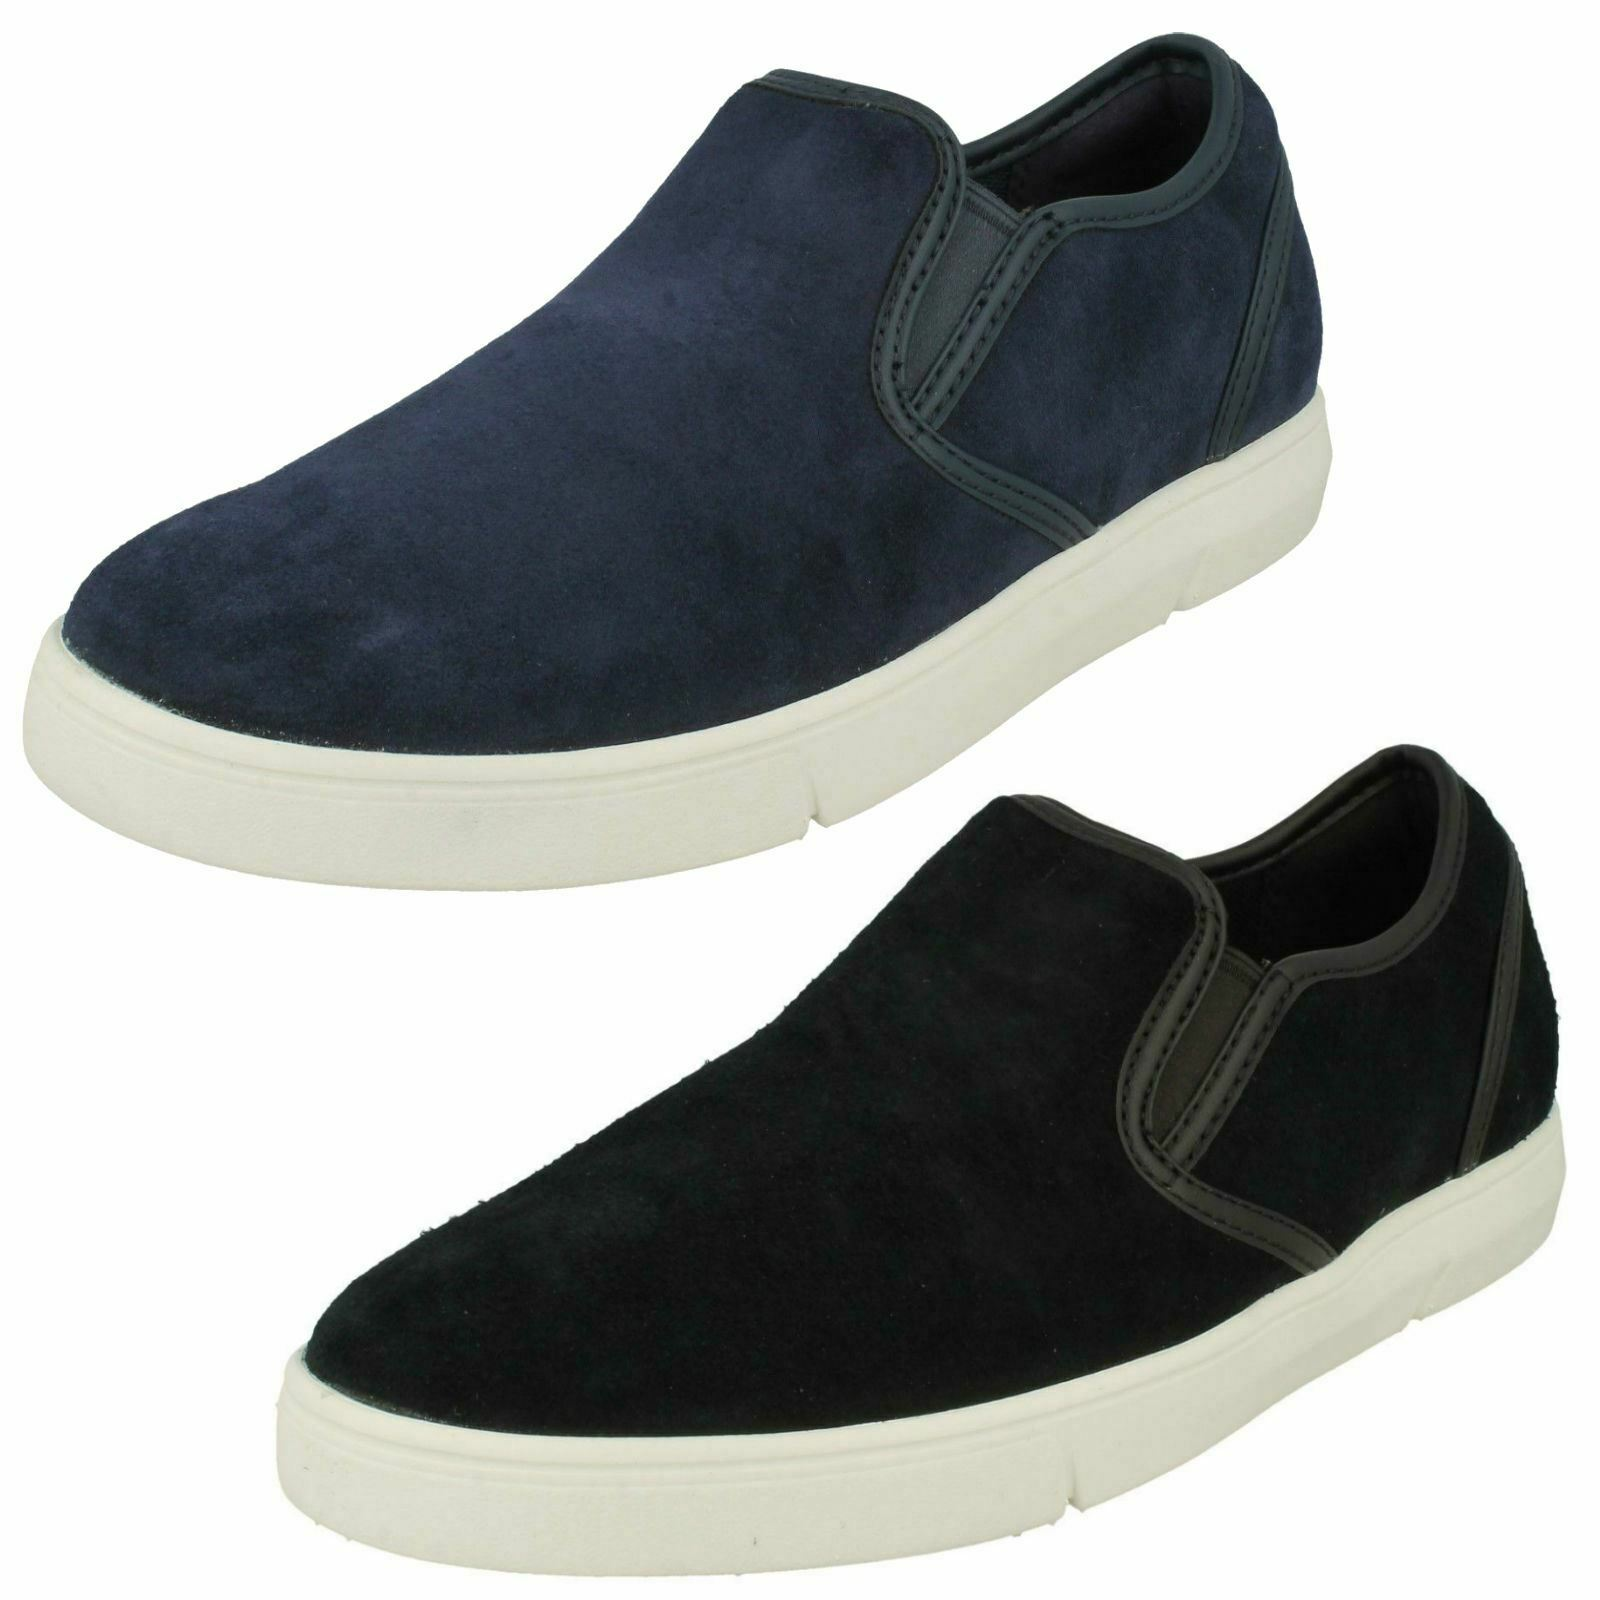 'Mens Clarks' Casual slip On shoes - Landry Step